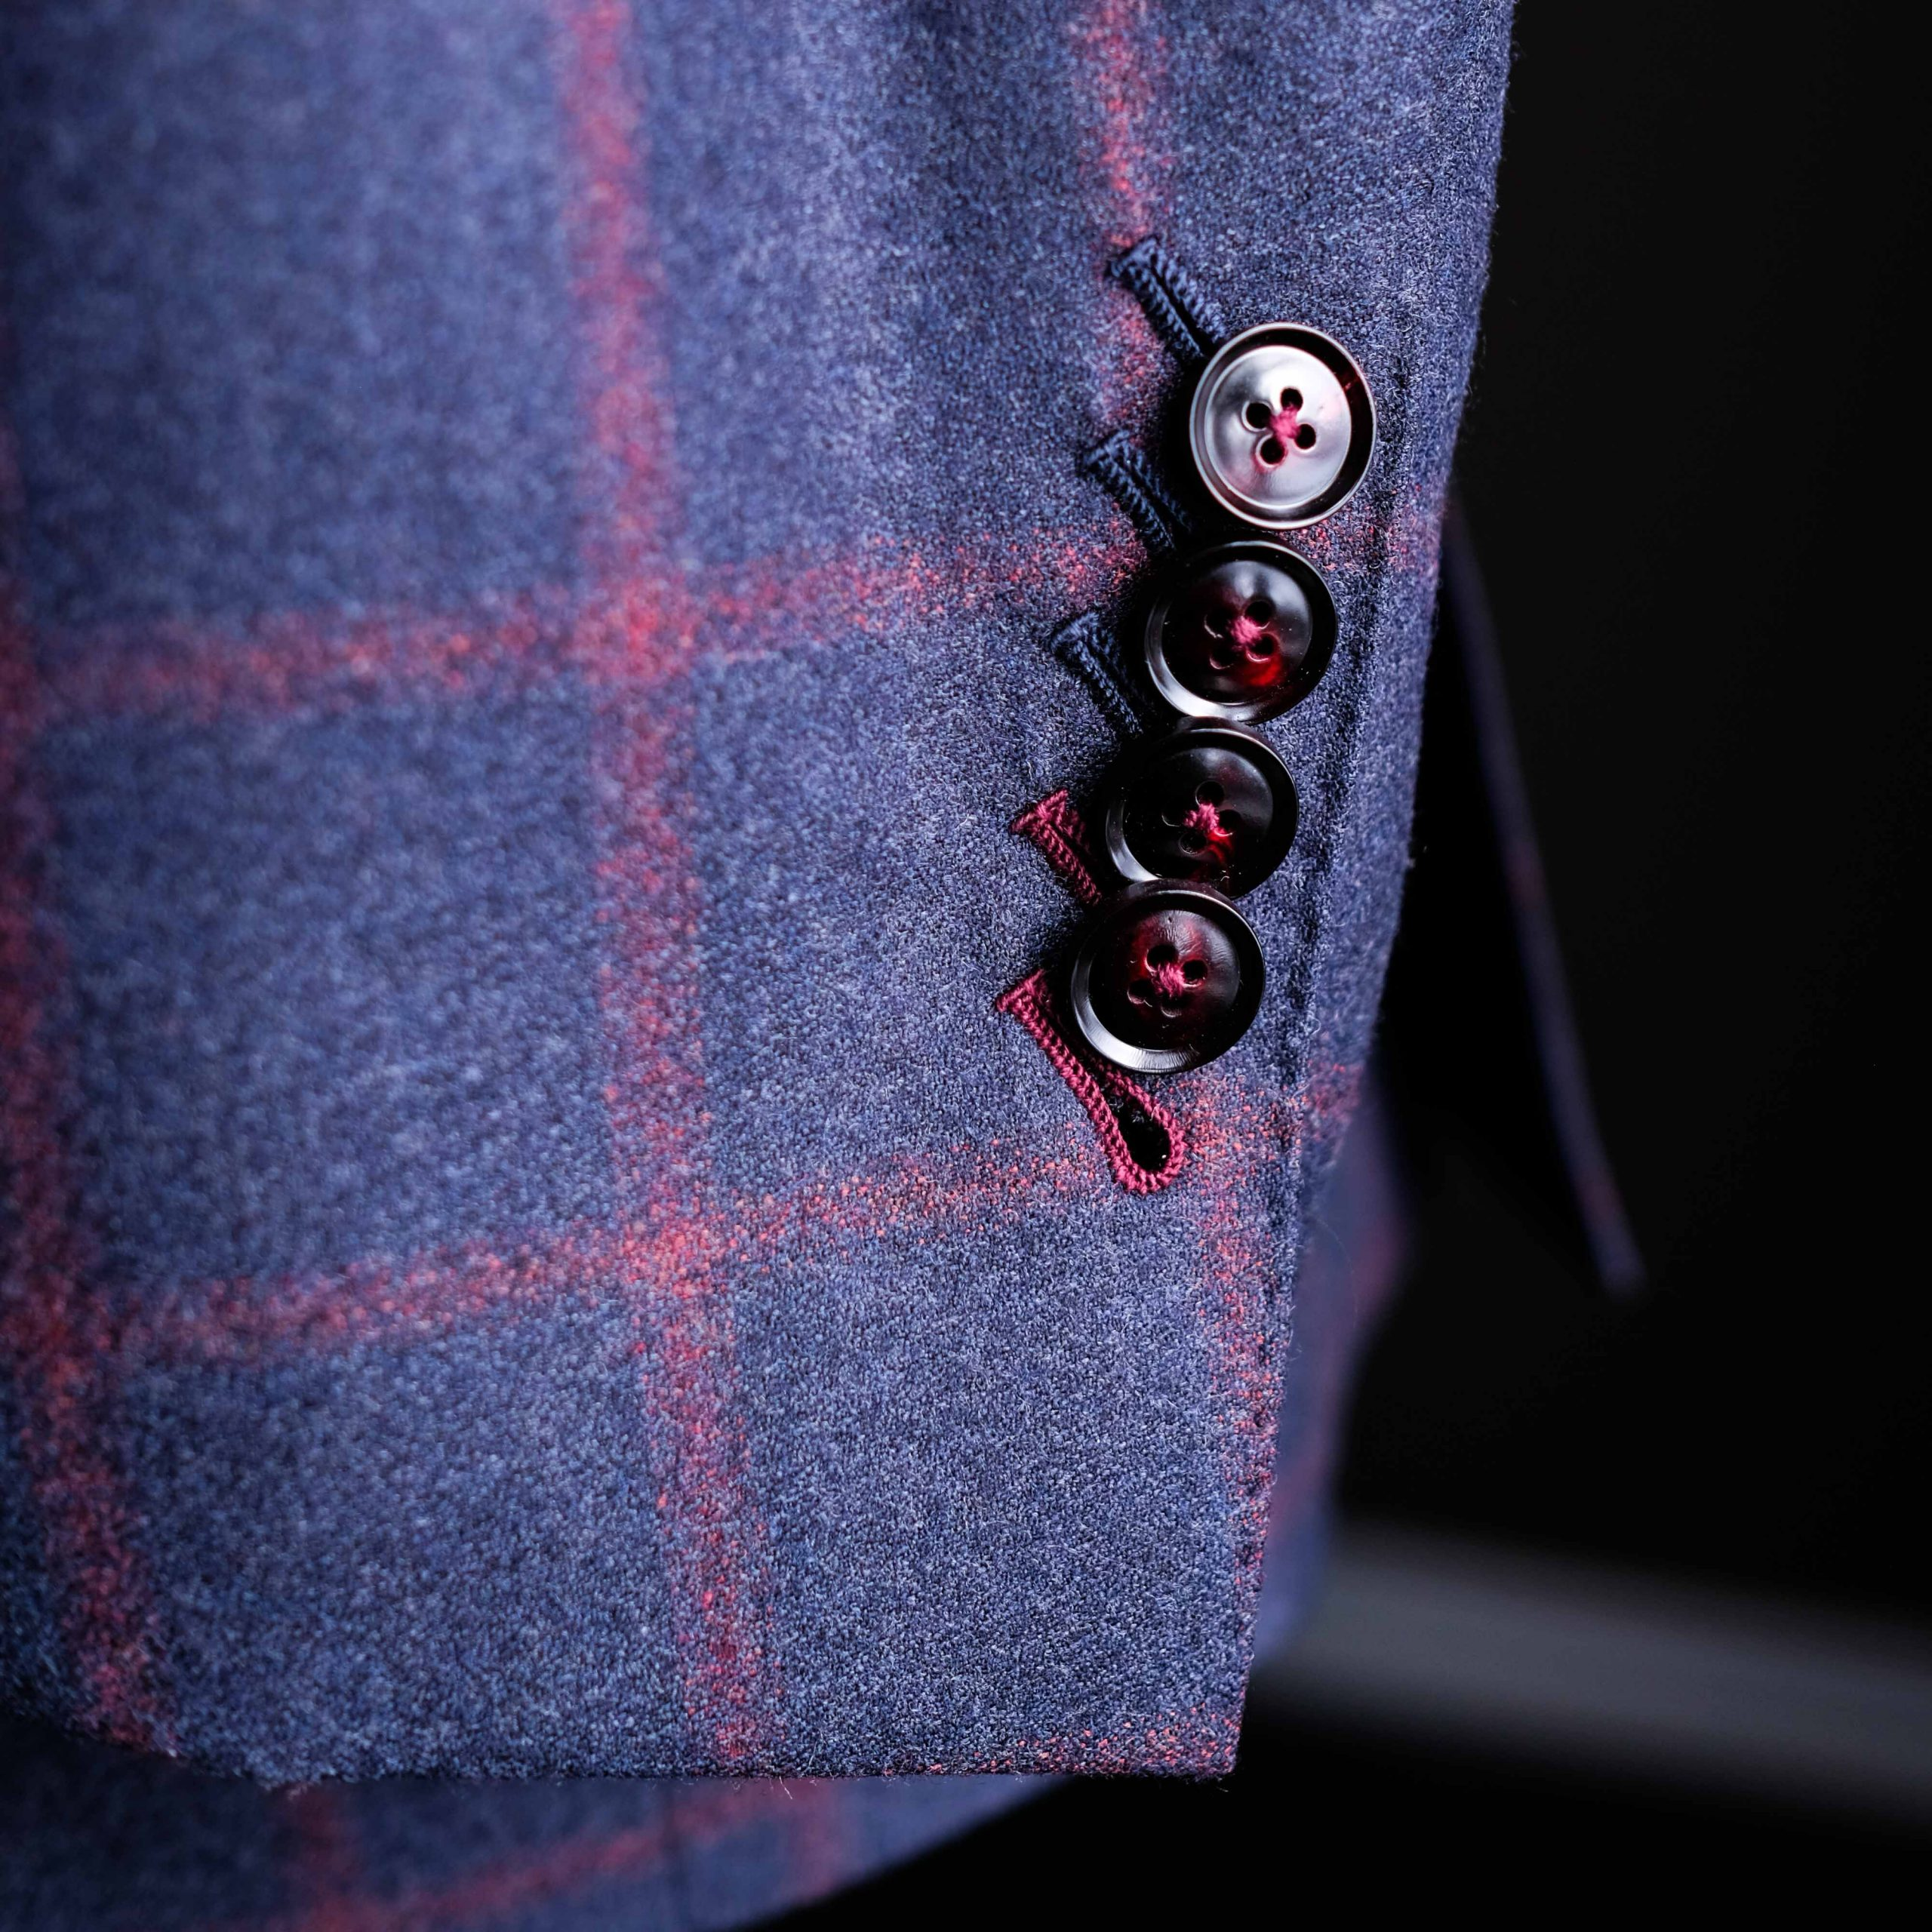 Functioning Buttons on Suit Jacket Sleeve